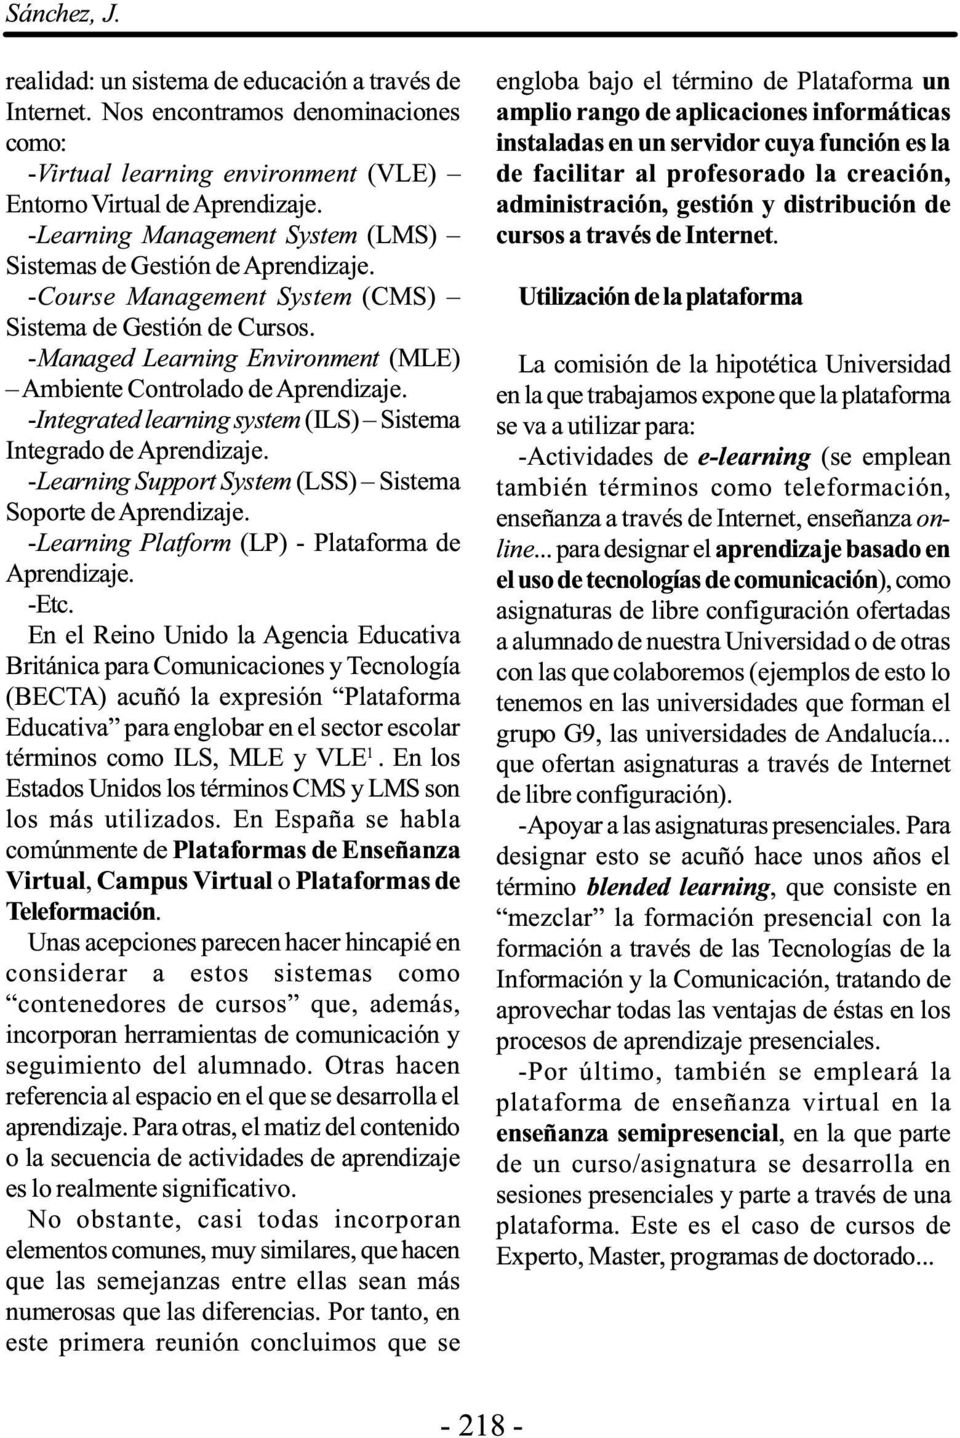 -Managed Learning Environment (MLE) Ambiente Controlado de Aprendizaje. -Integrated learning system(ils) Sistema Integrado de Aprendizaje.